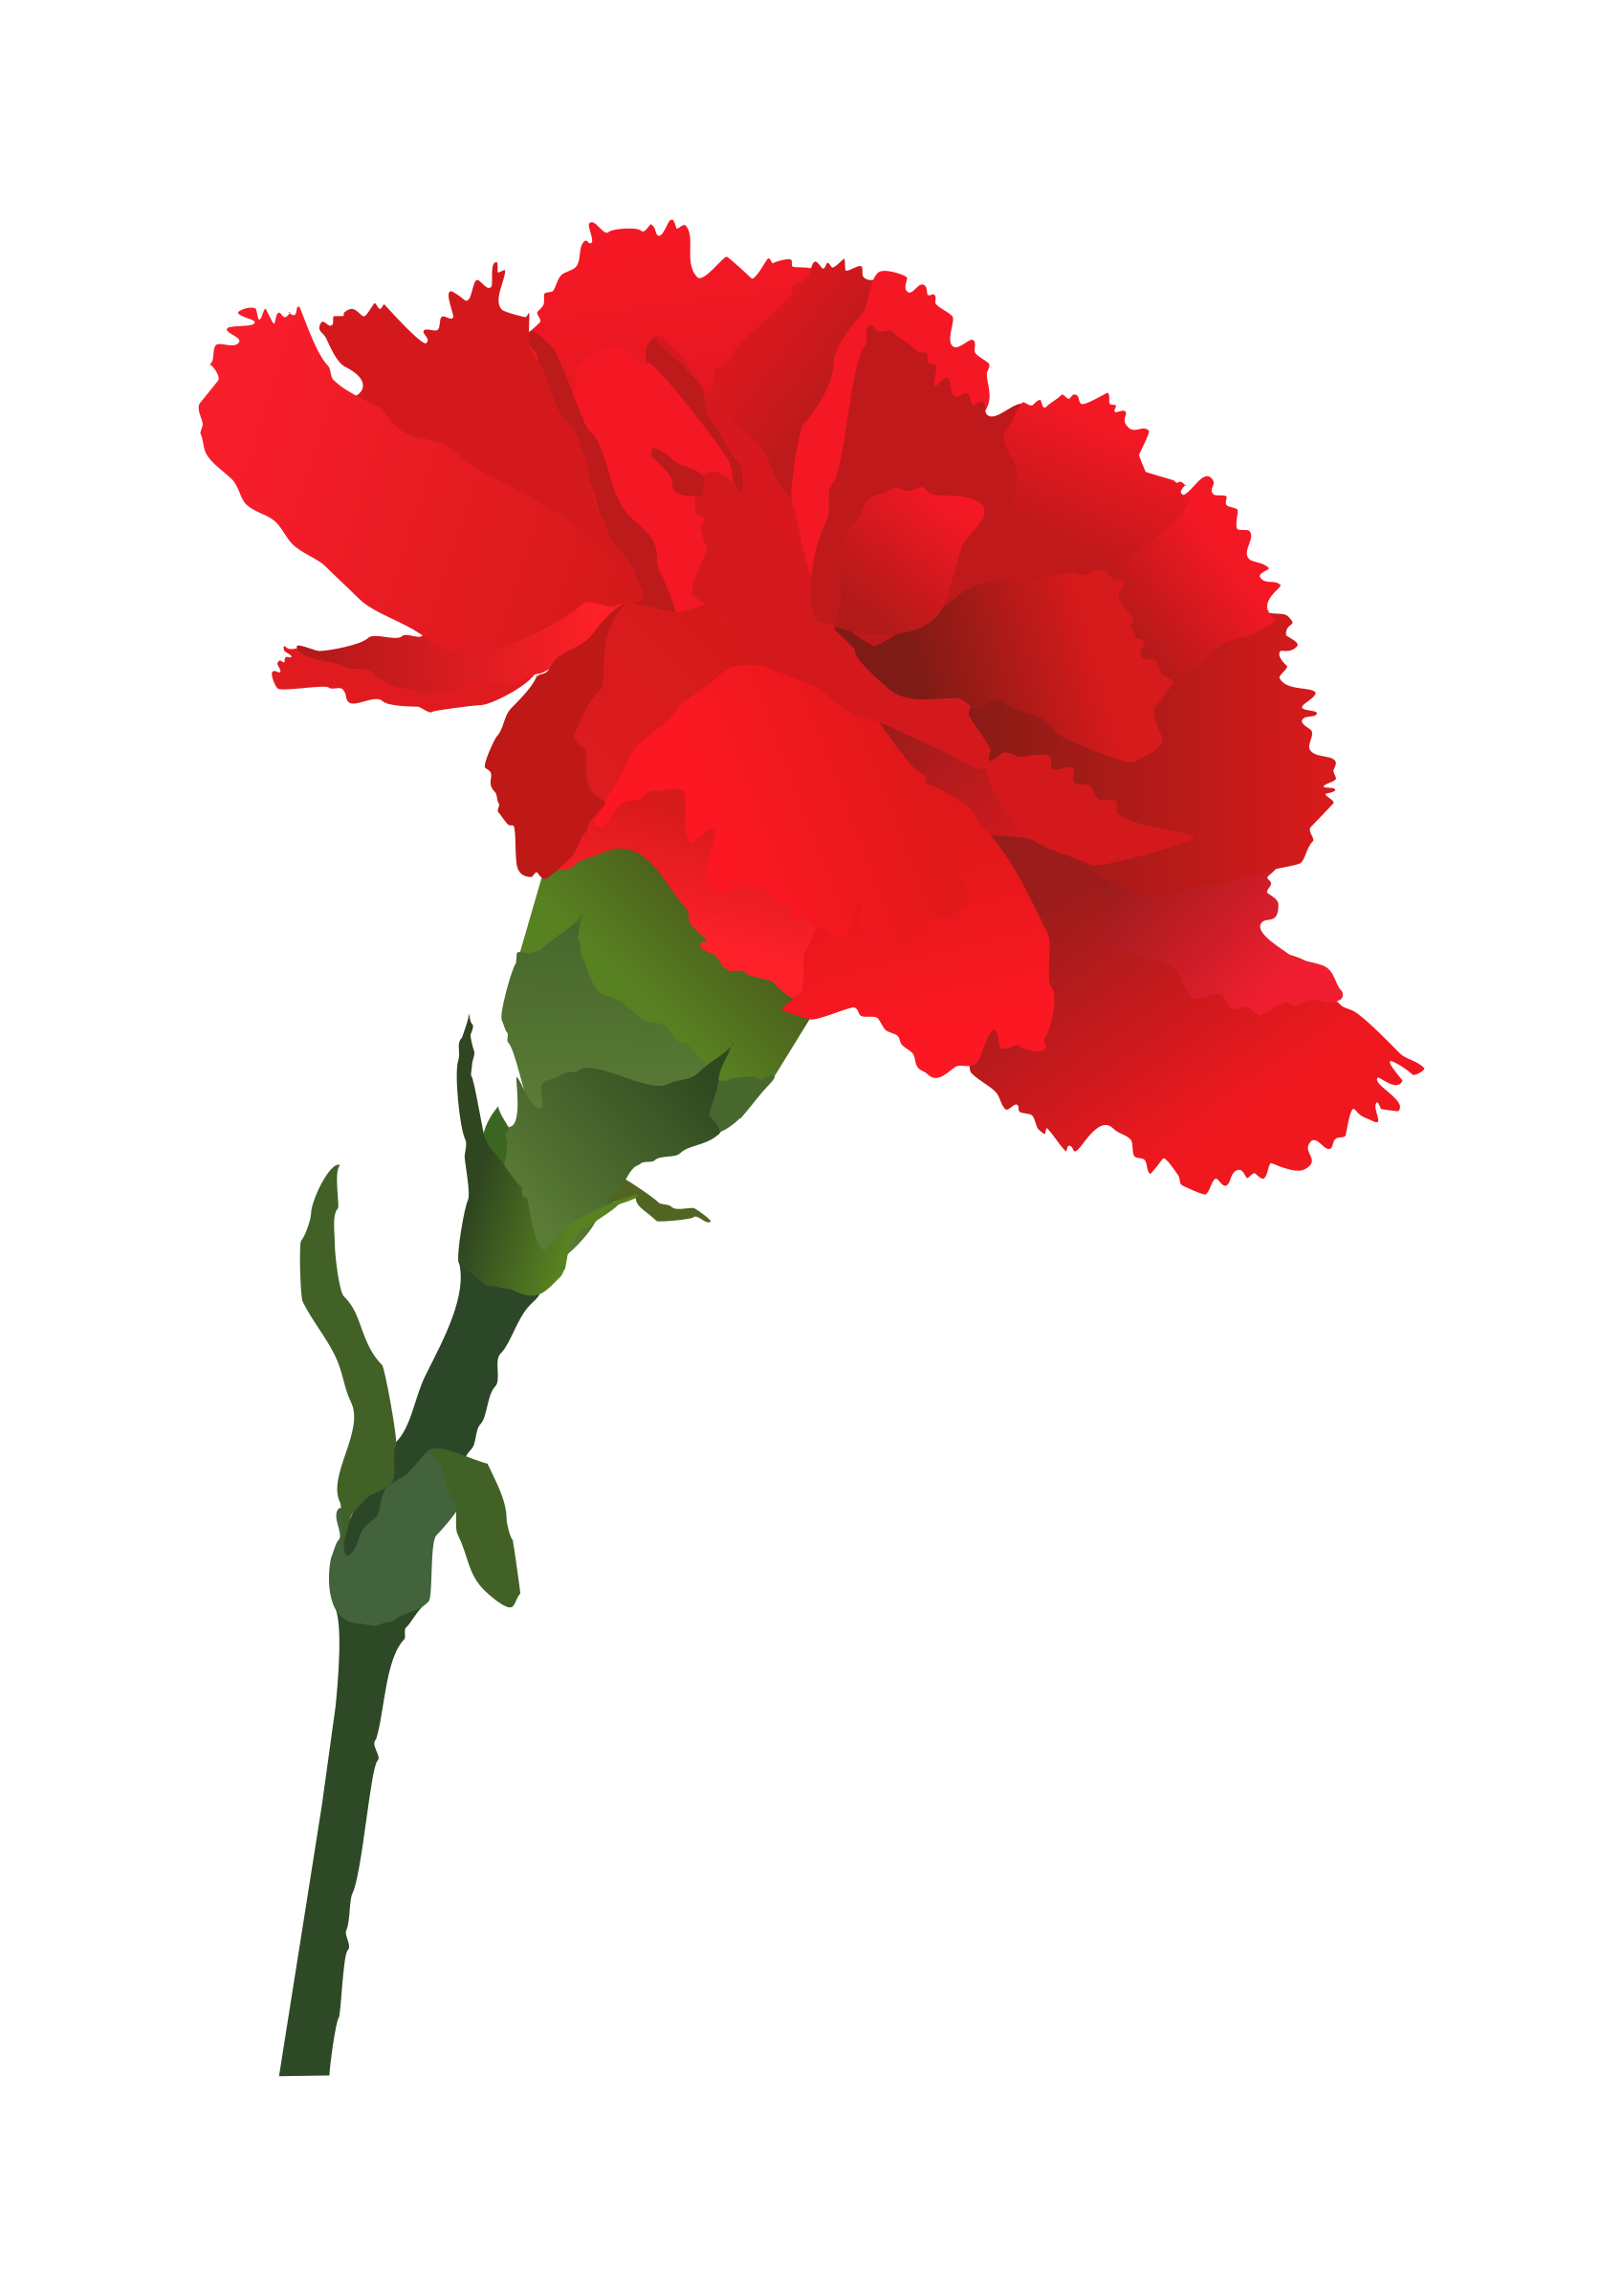 rose vector clipart.